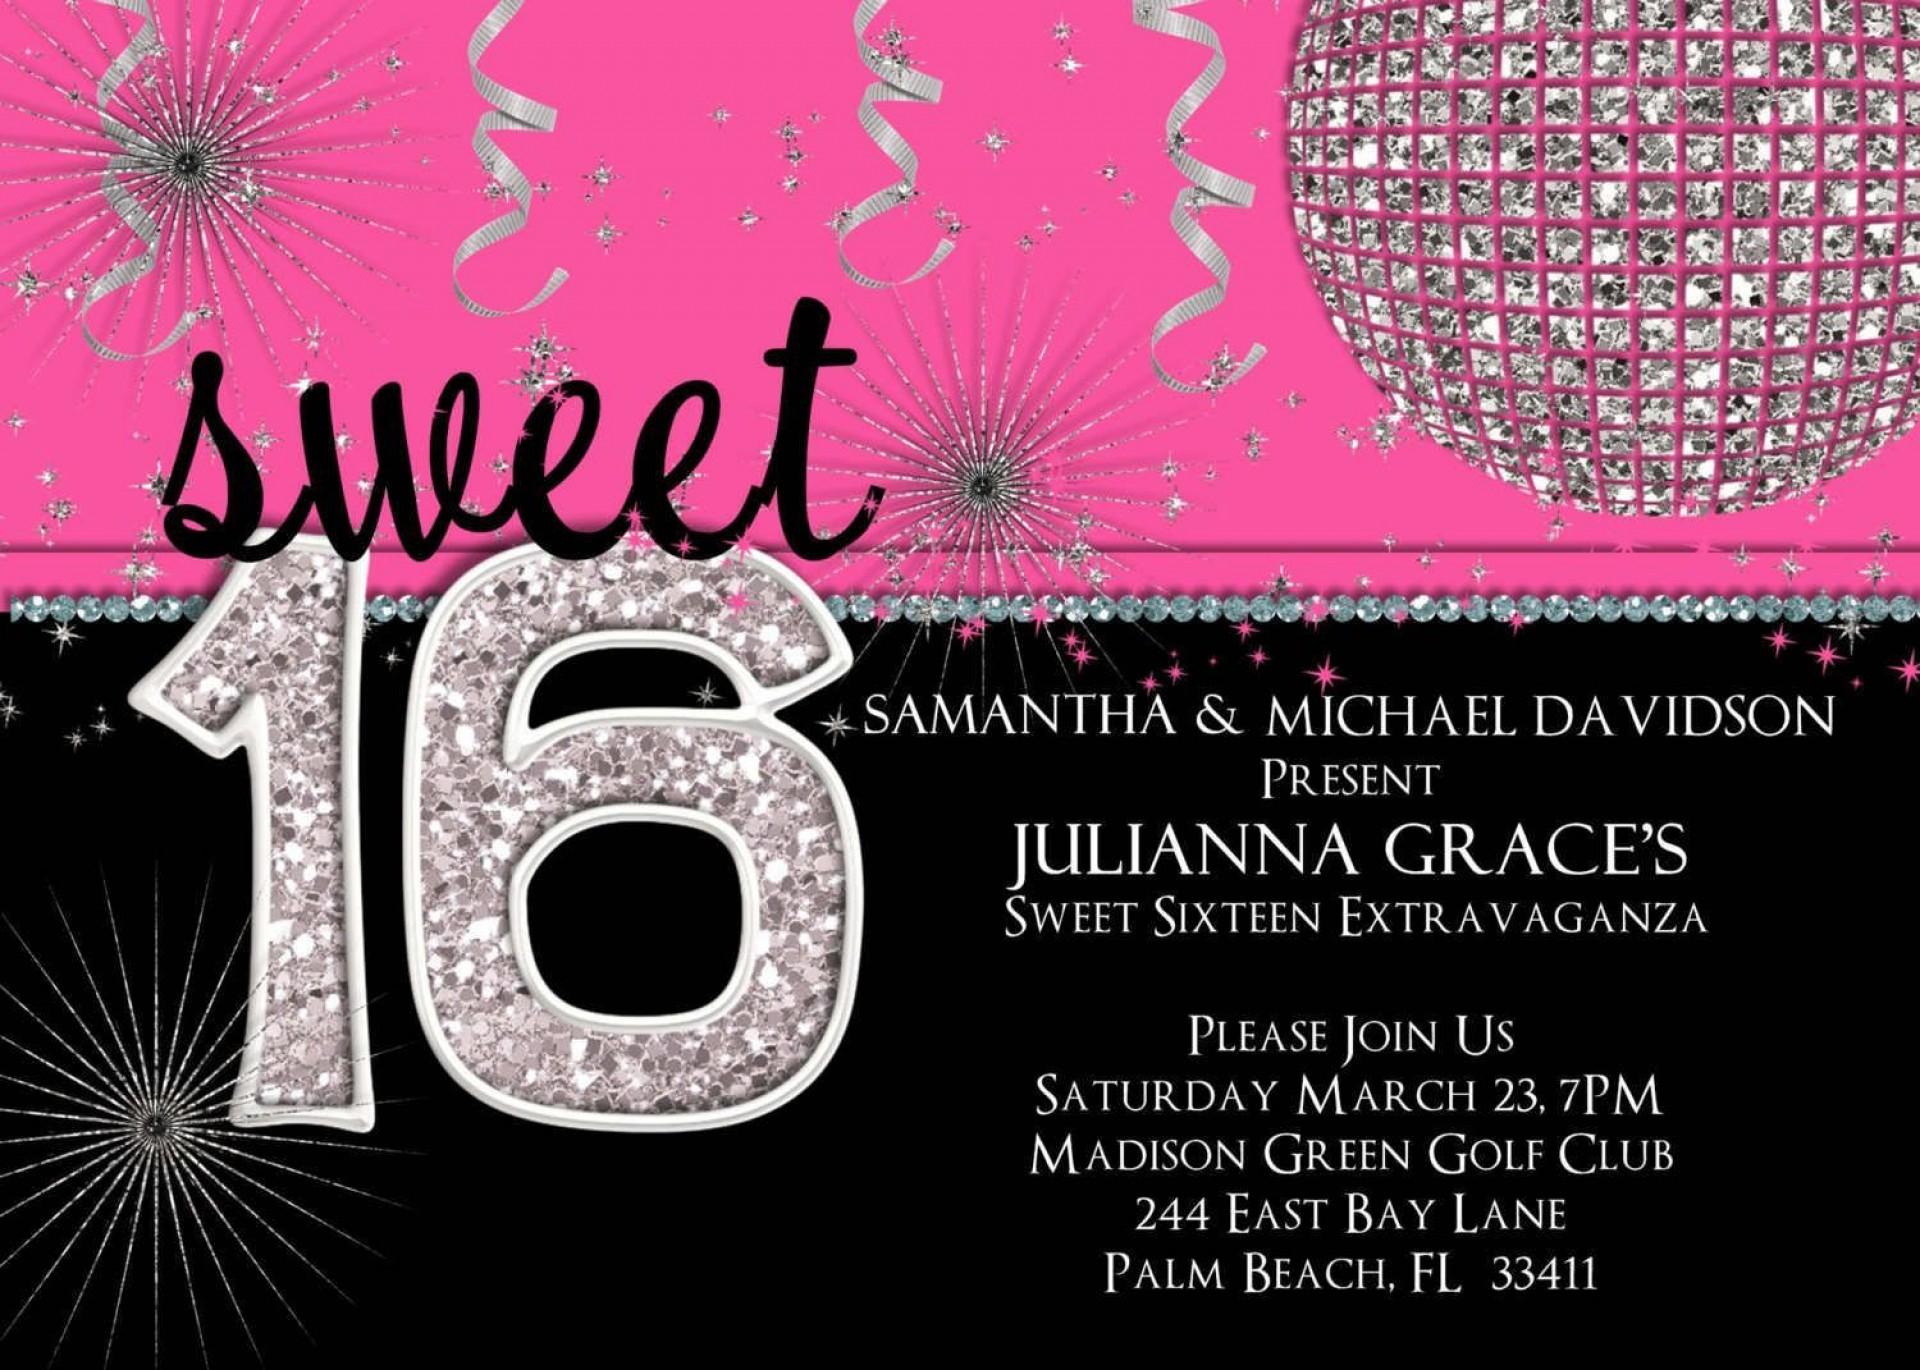 002 Remarkable Sweet Sixteen Invitation Template High Definition  Templates Blue 16 Party Free1920